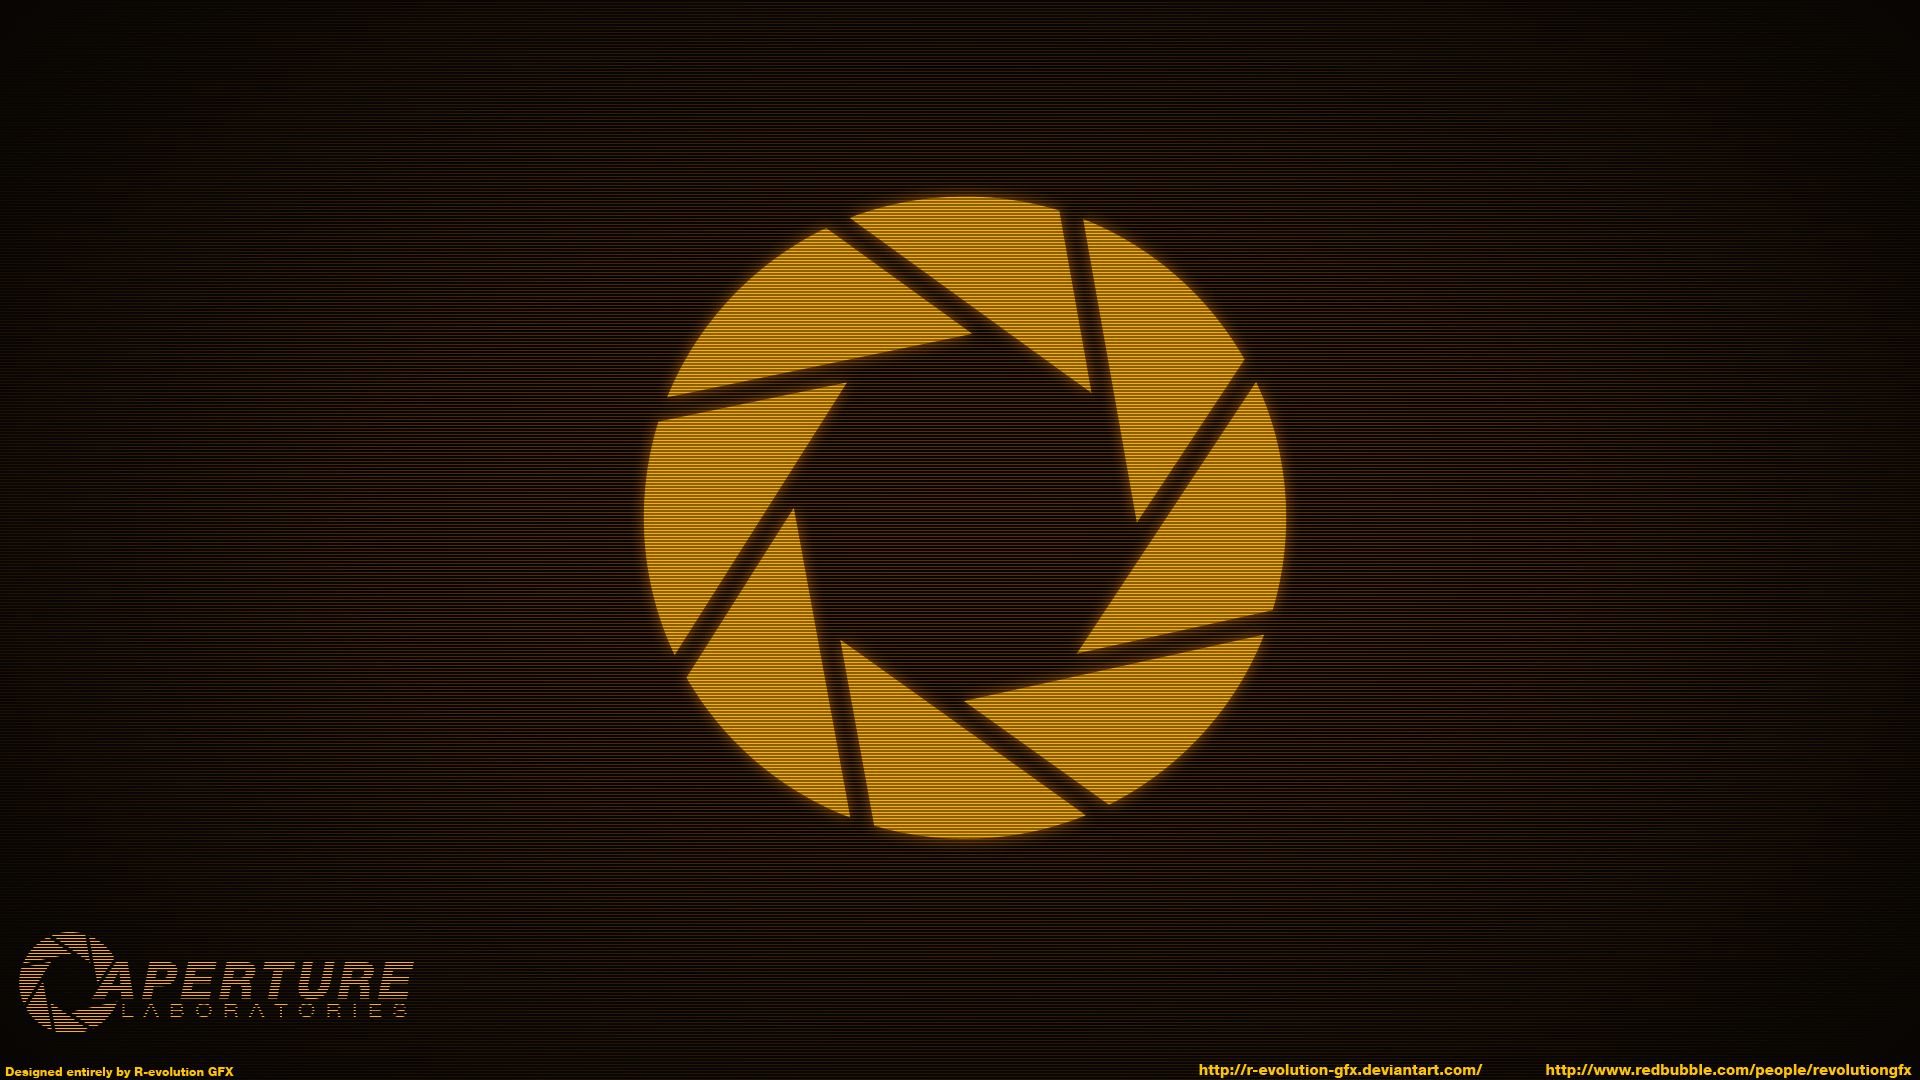 Aperture Laboratories Logo wallpaper - 272964